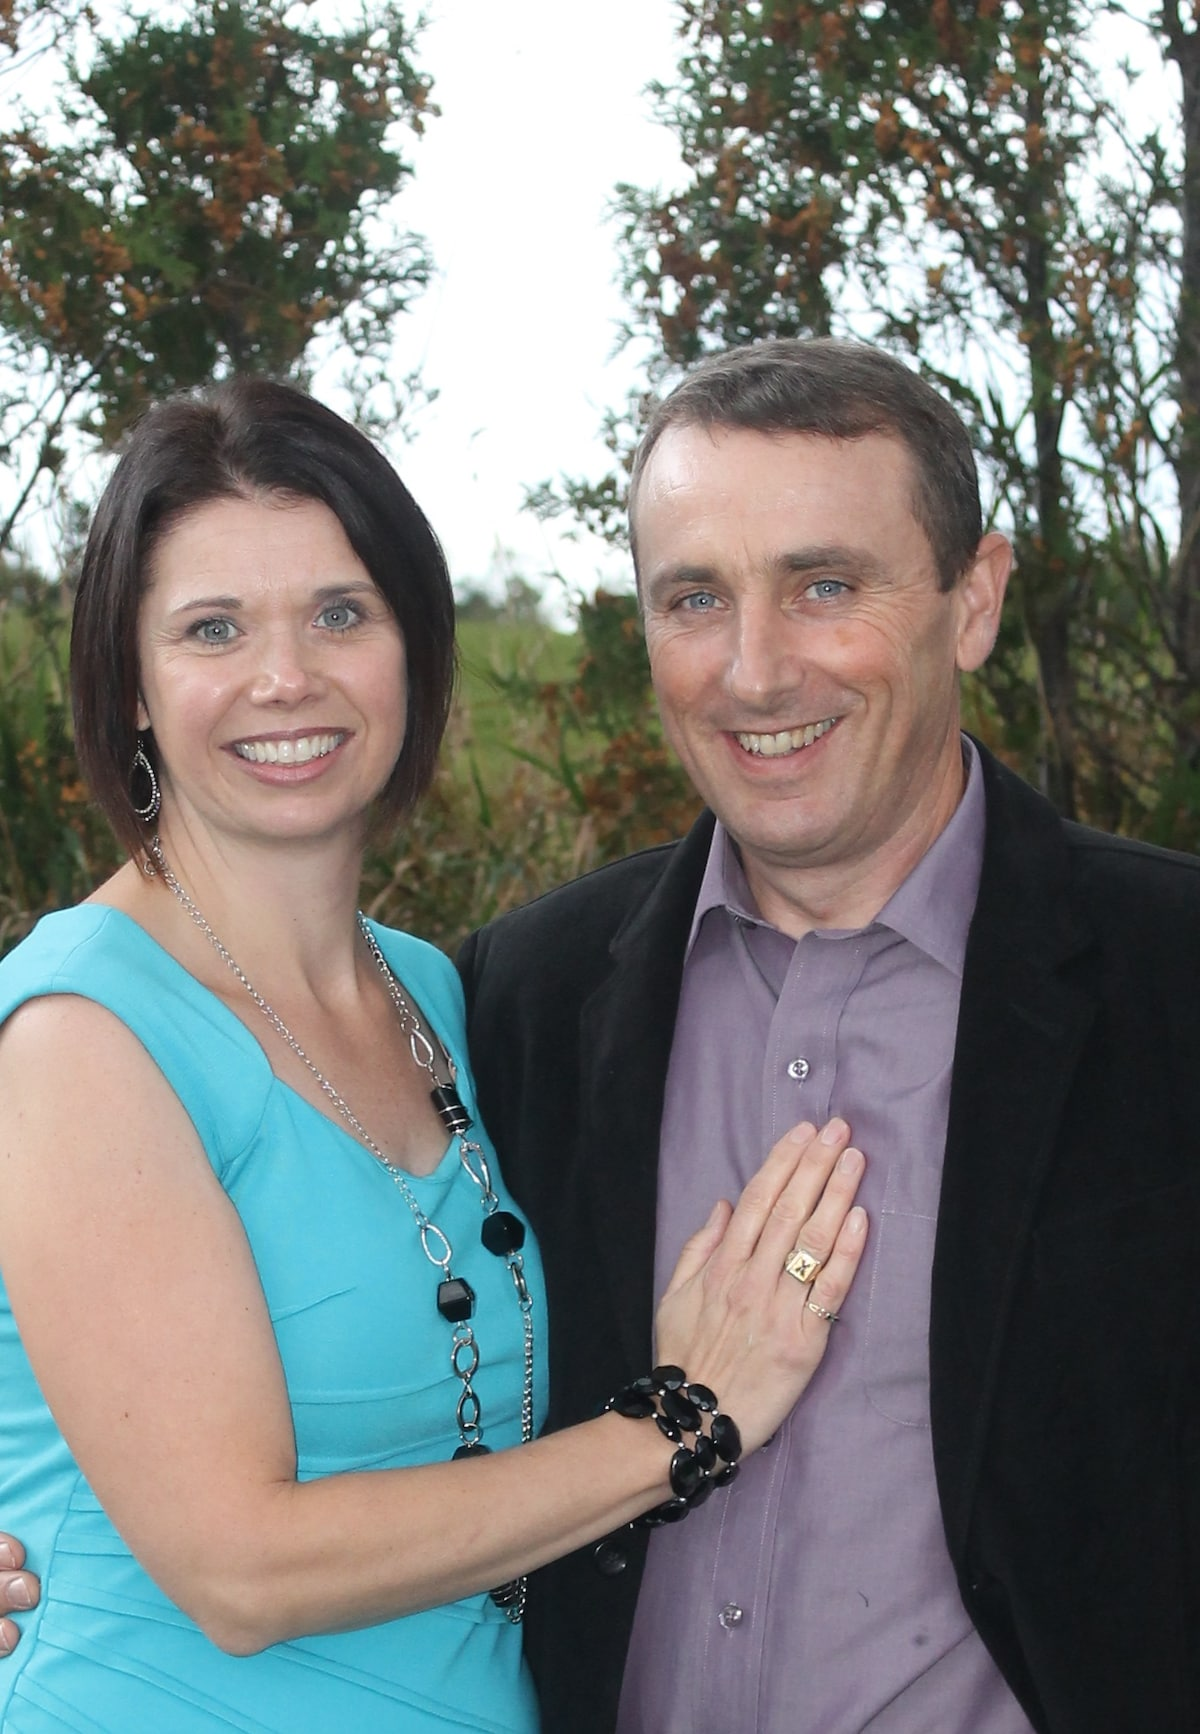 Peter & Jackie From Guysborough County, Canada